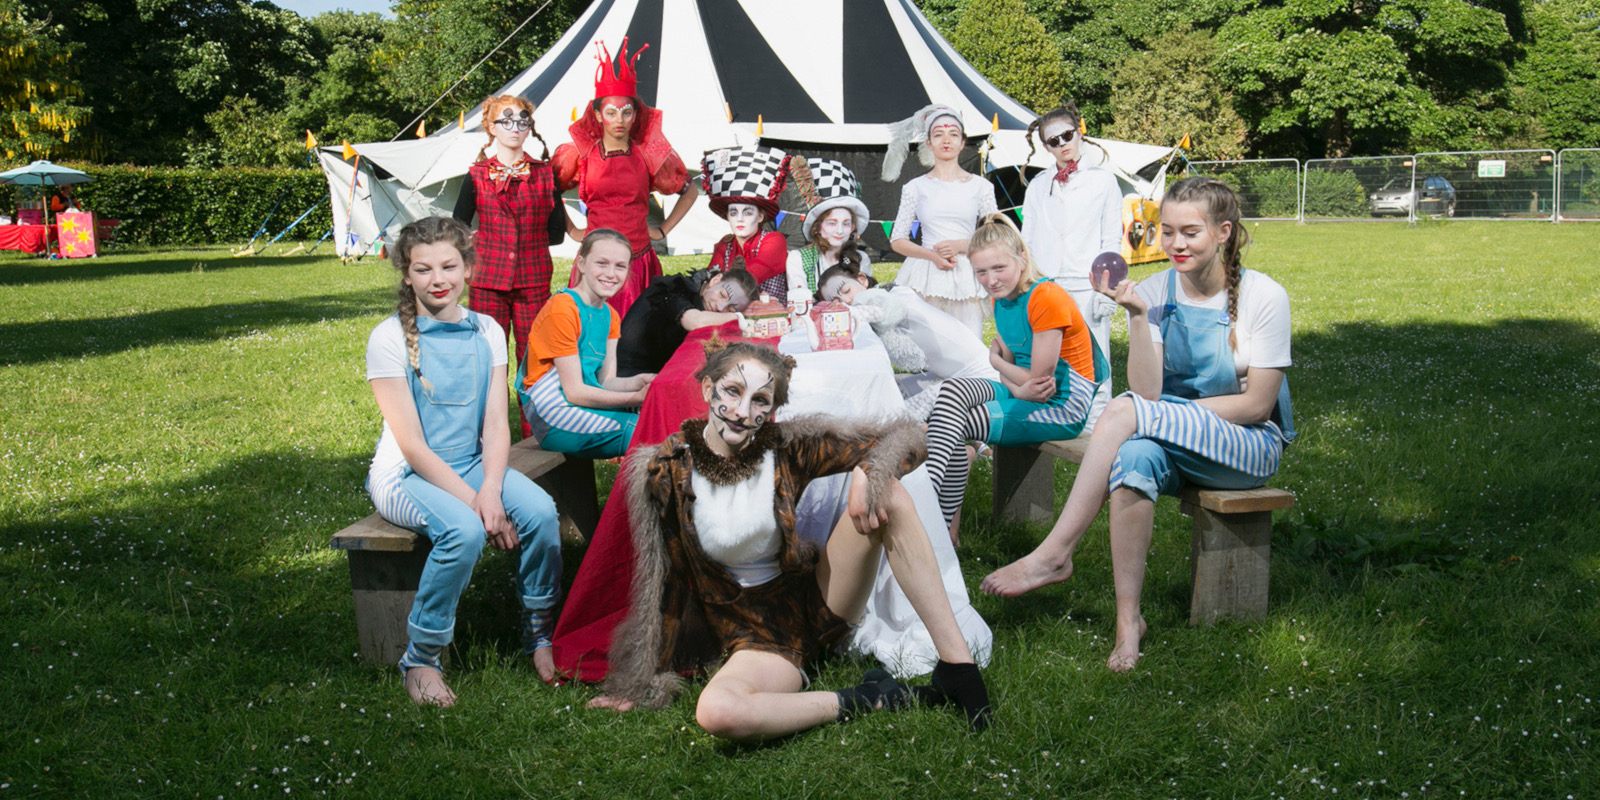 'Alice in Wonderland' show, troupe group photo